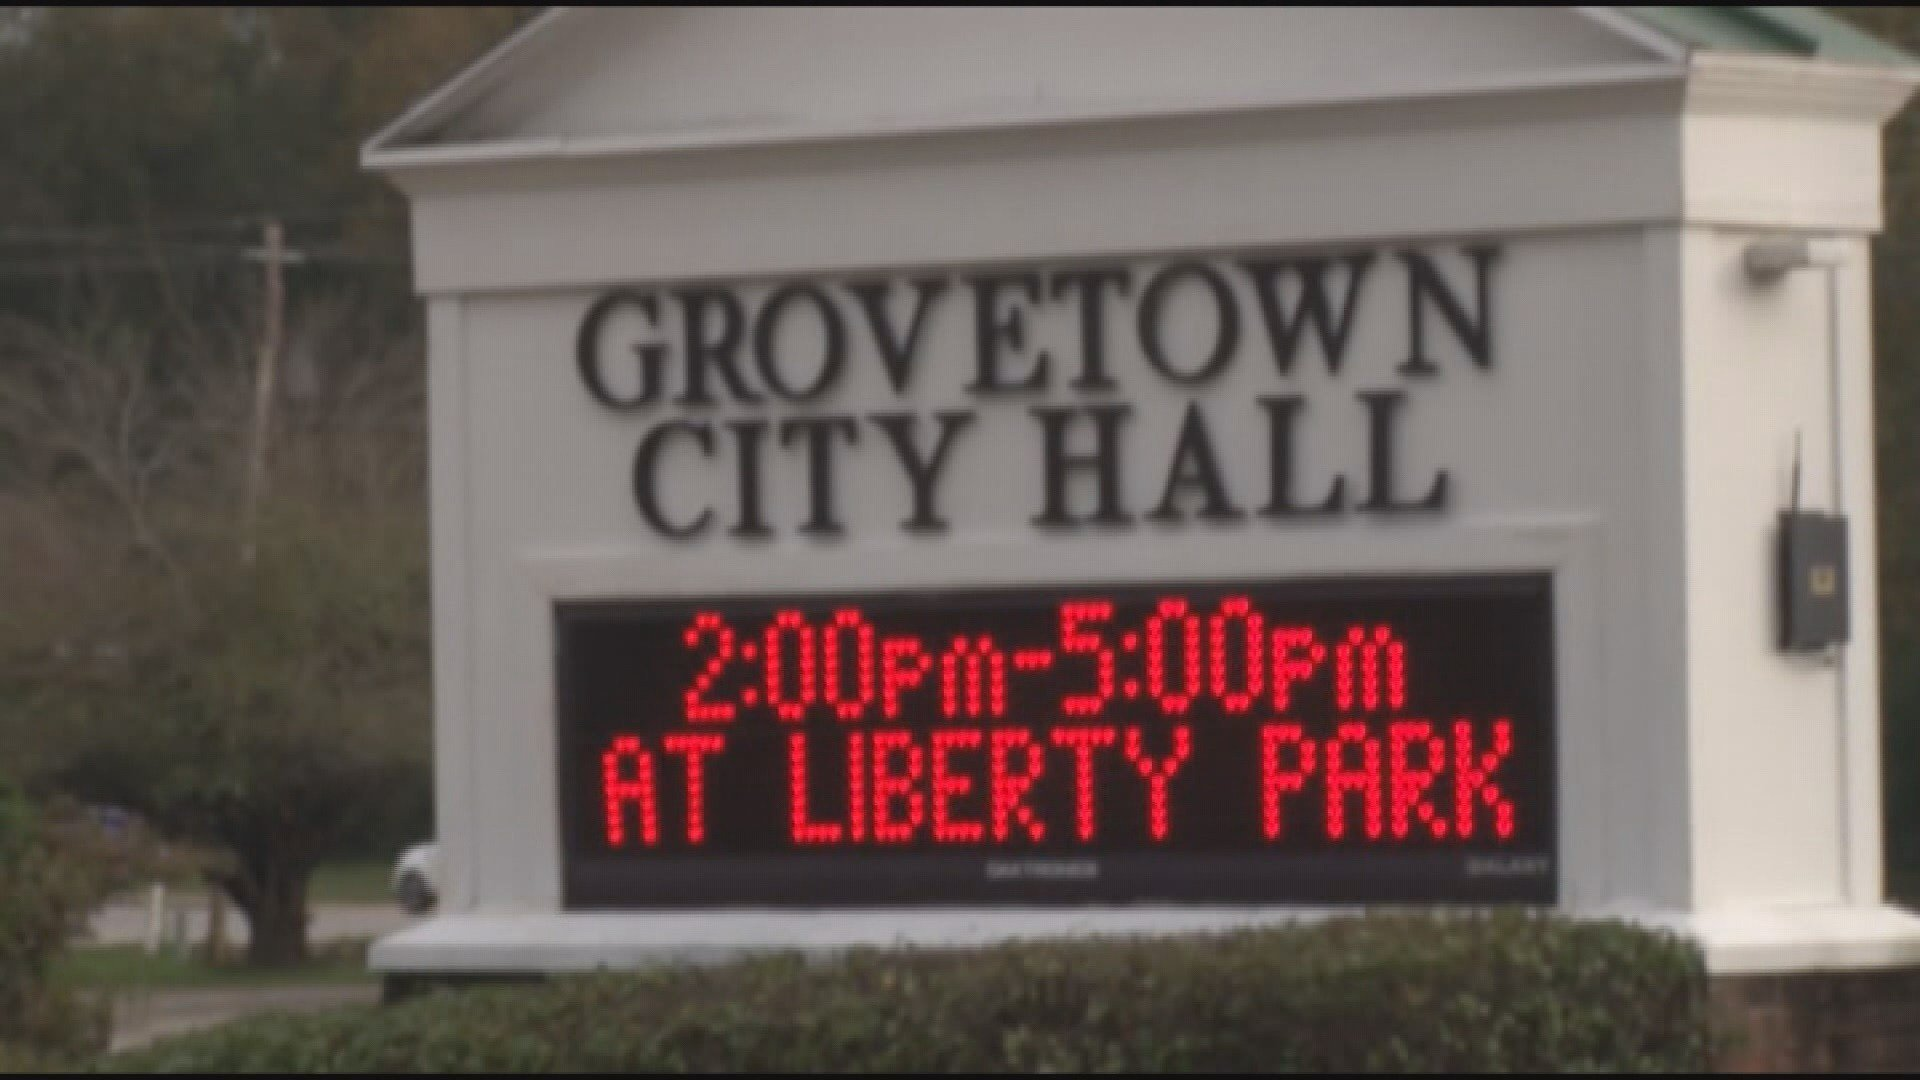 Former Grovetown City Clerk facing federal charges (WFXG)